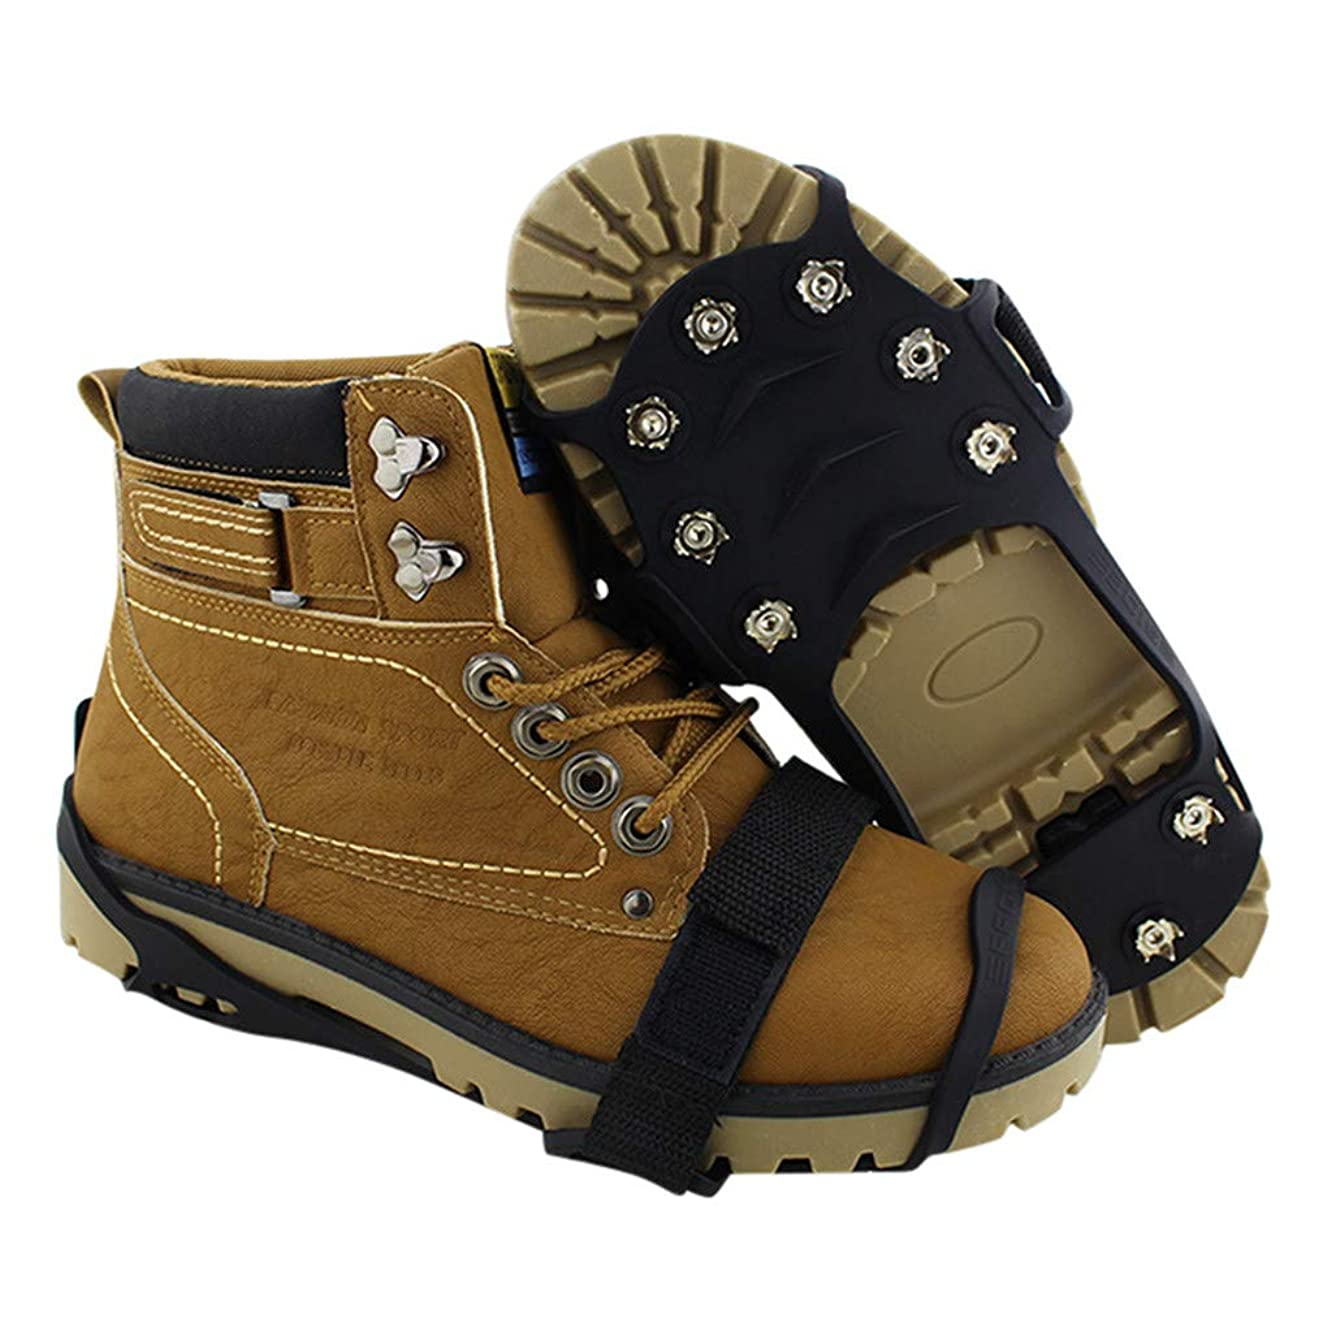 Dreamyth- Non-Slip Snow Cleats Shoes Boots Cover Step Ice Spikes Grips Crampons for Hiking Black